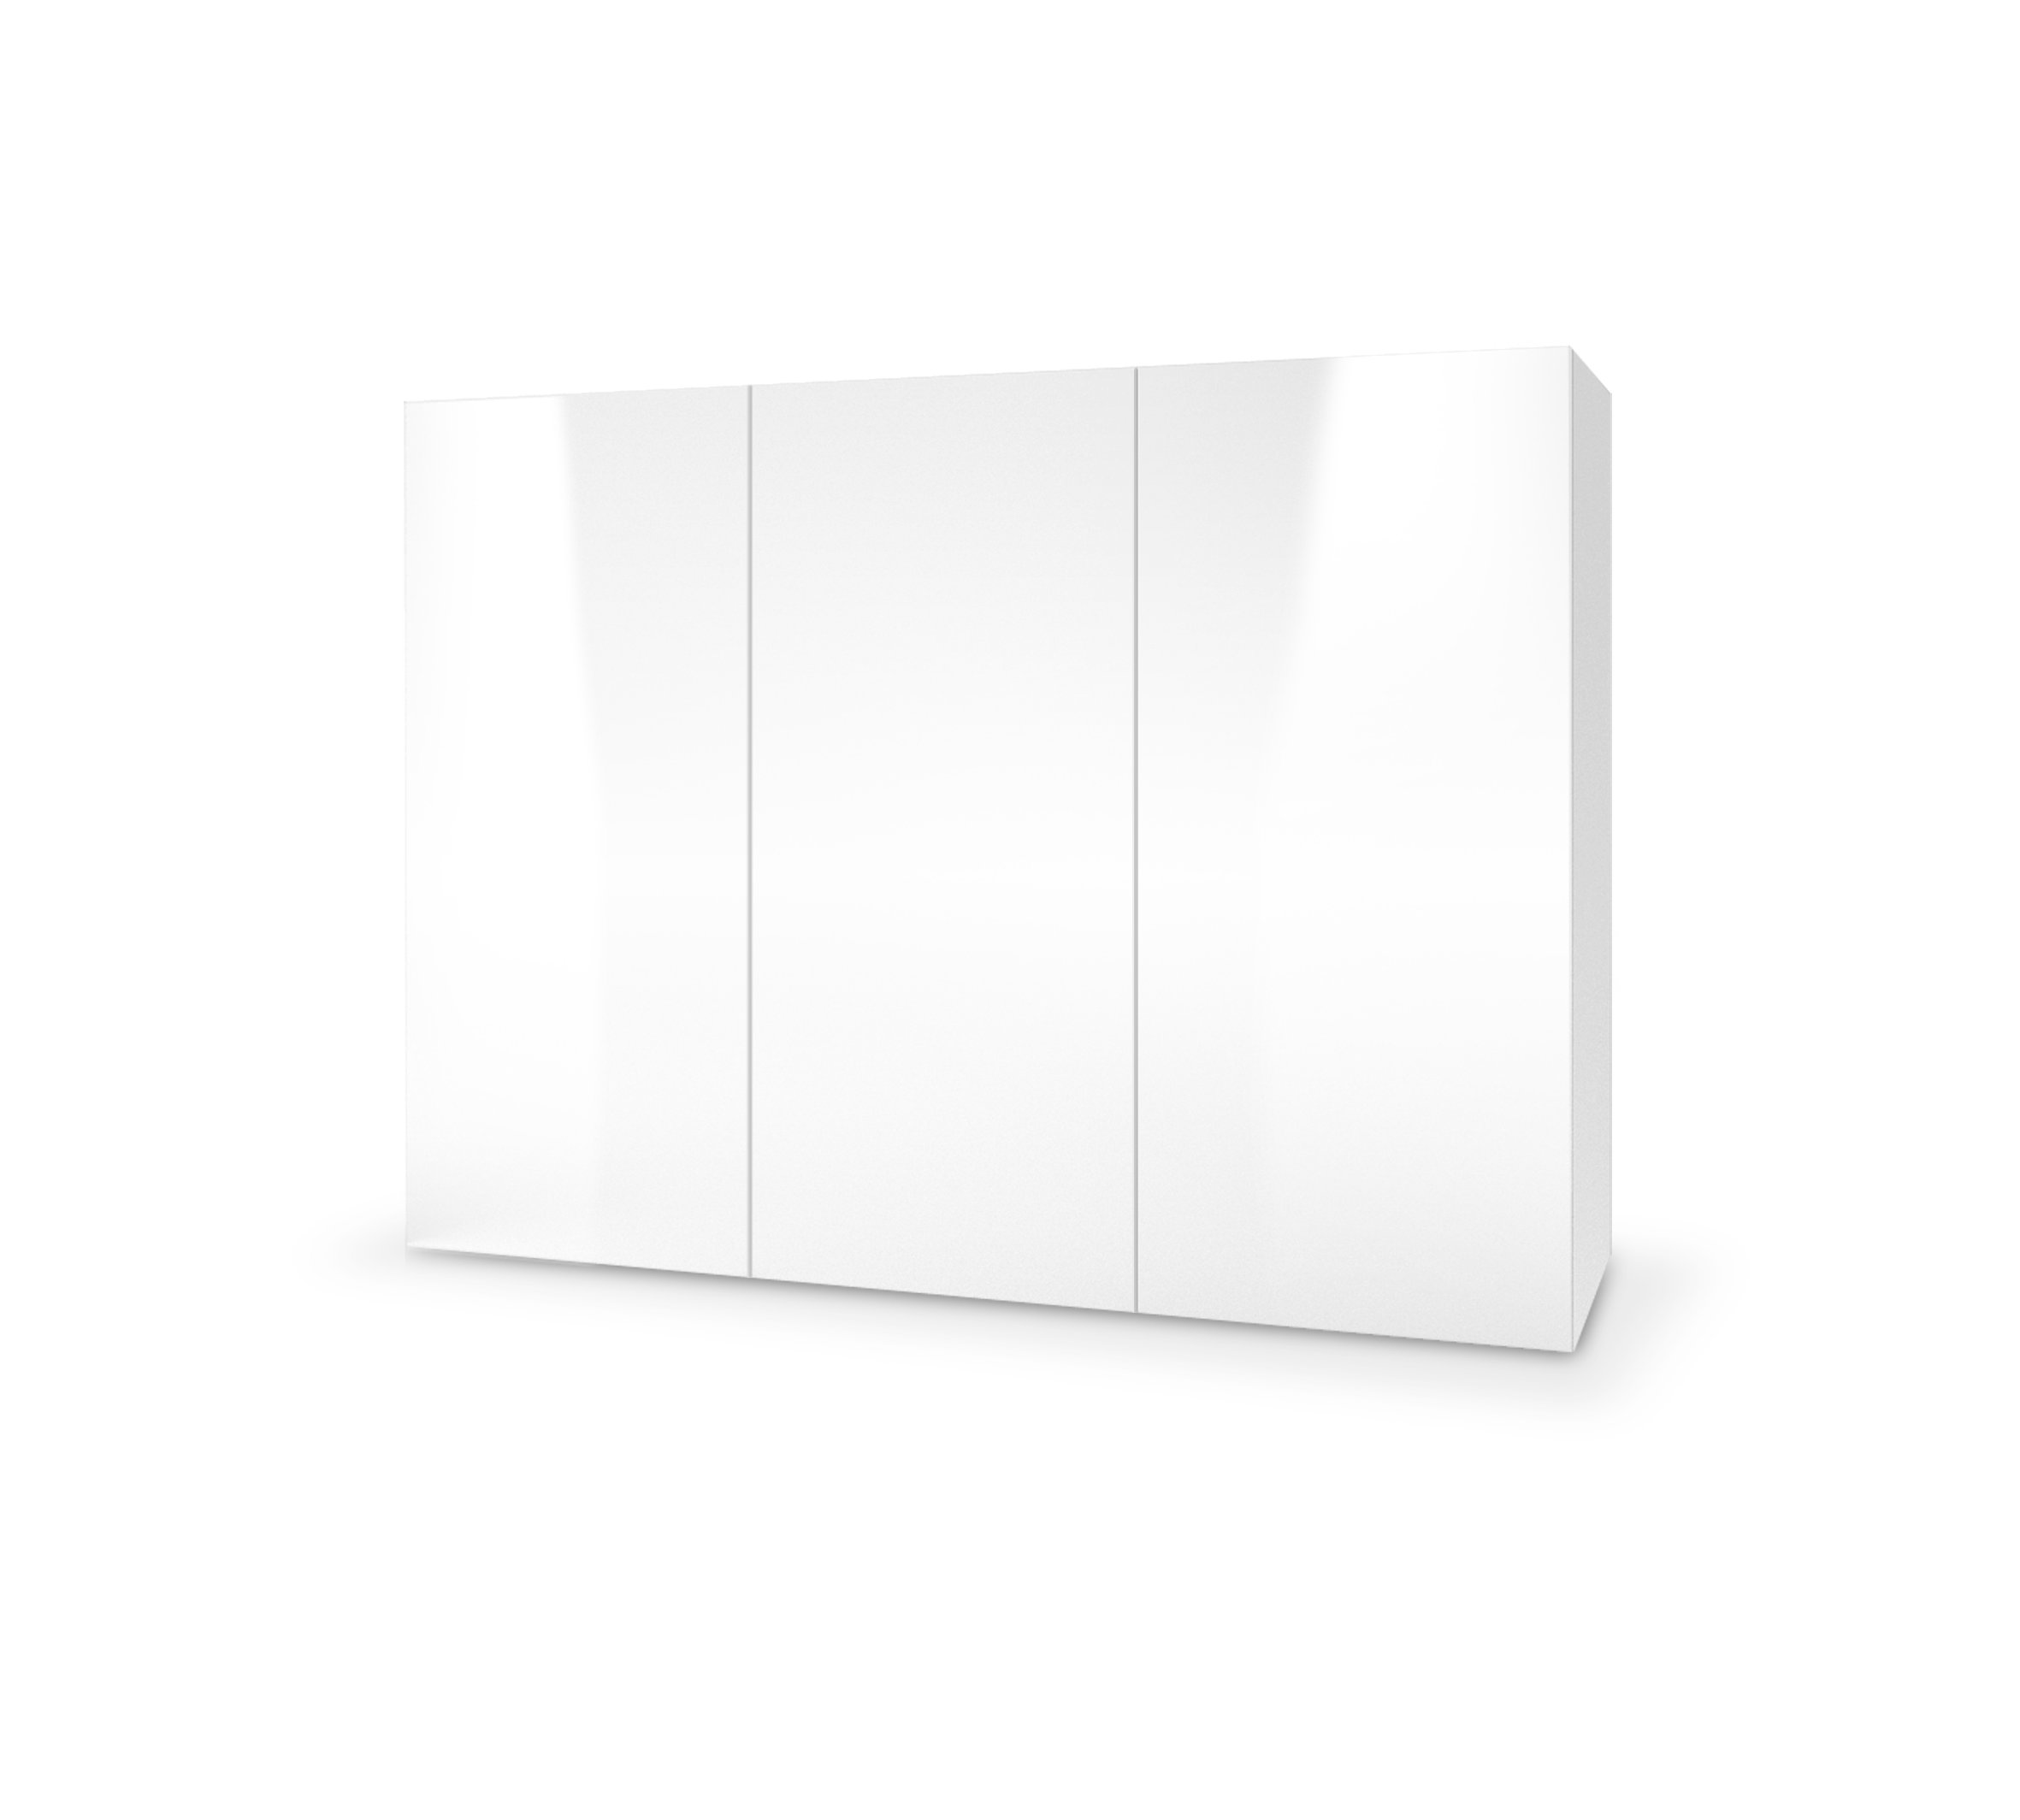 Dulap din MDF Livo KM-120 White, l120xA40xH90 cm imagine